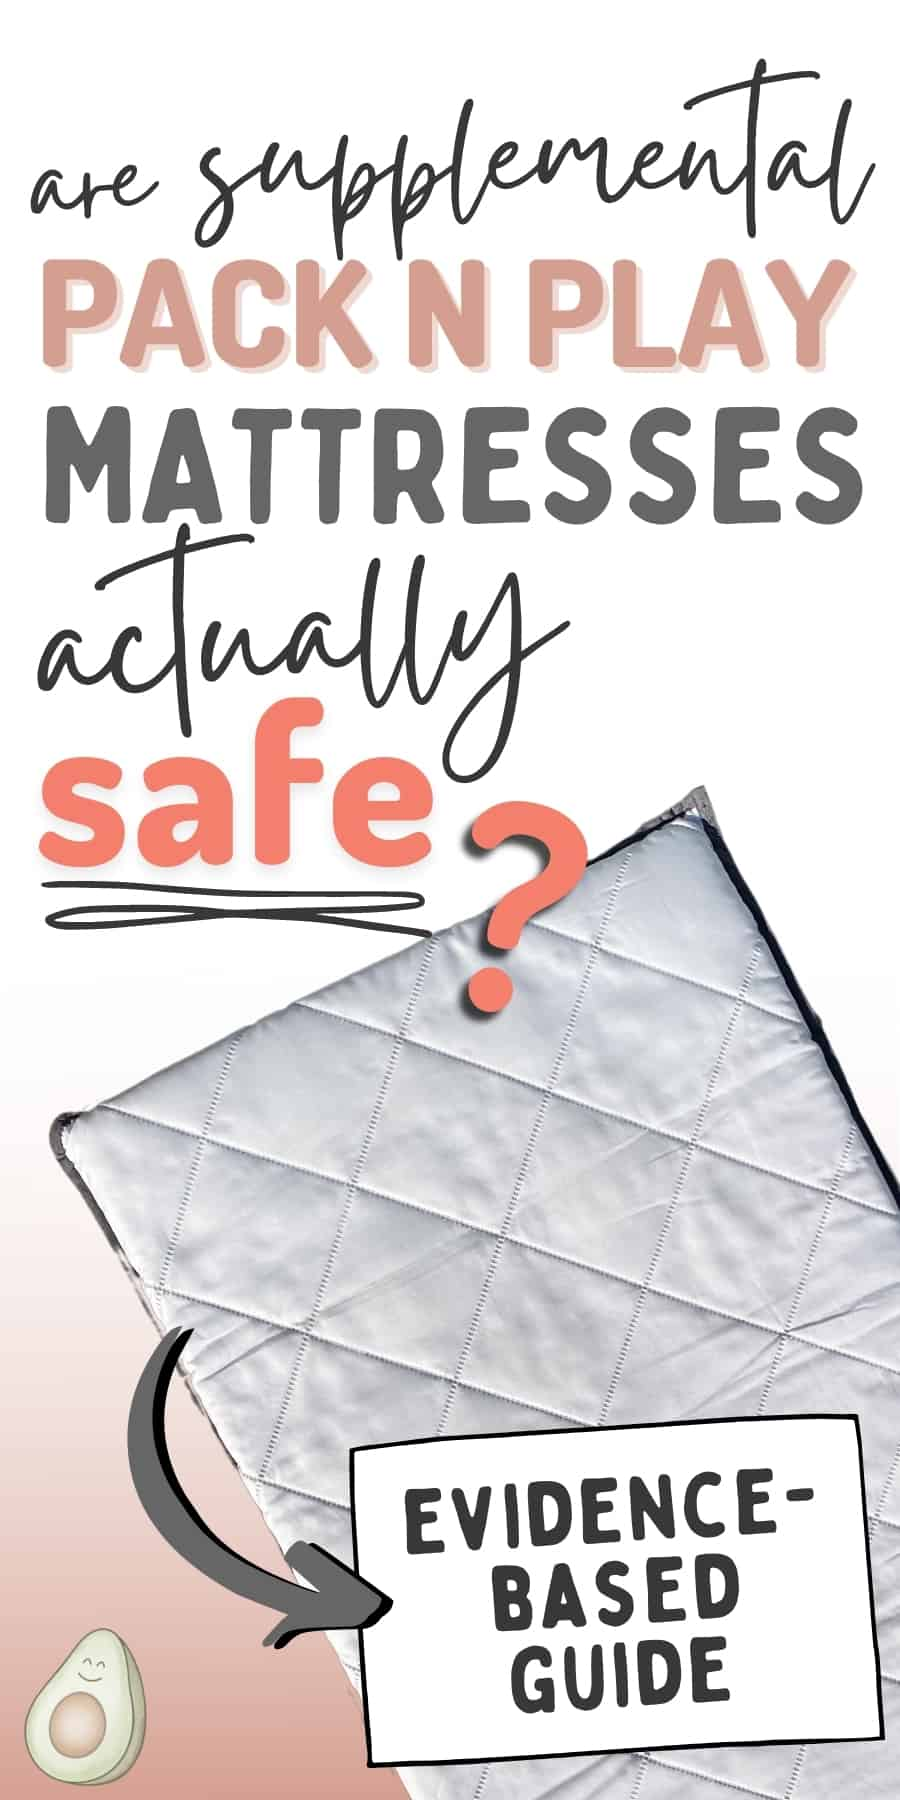 pack n play mattress safety